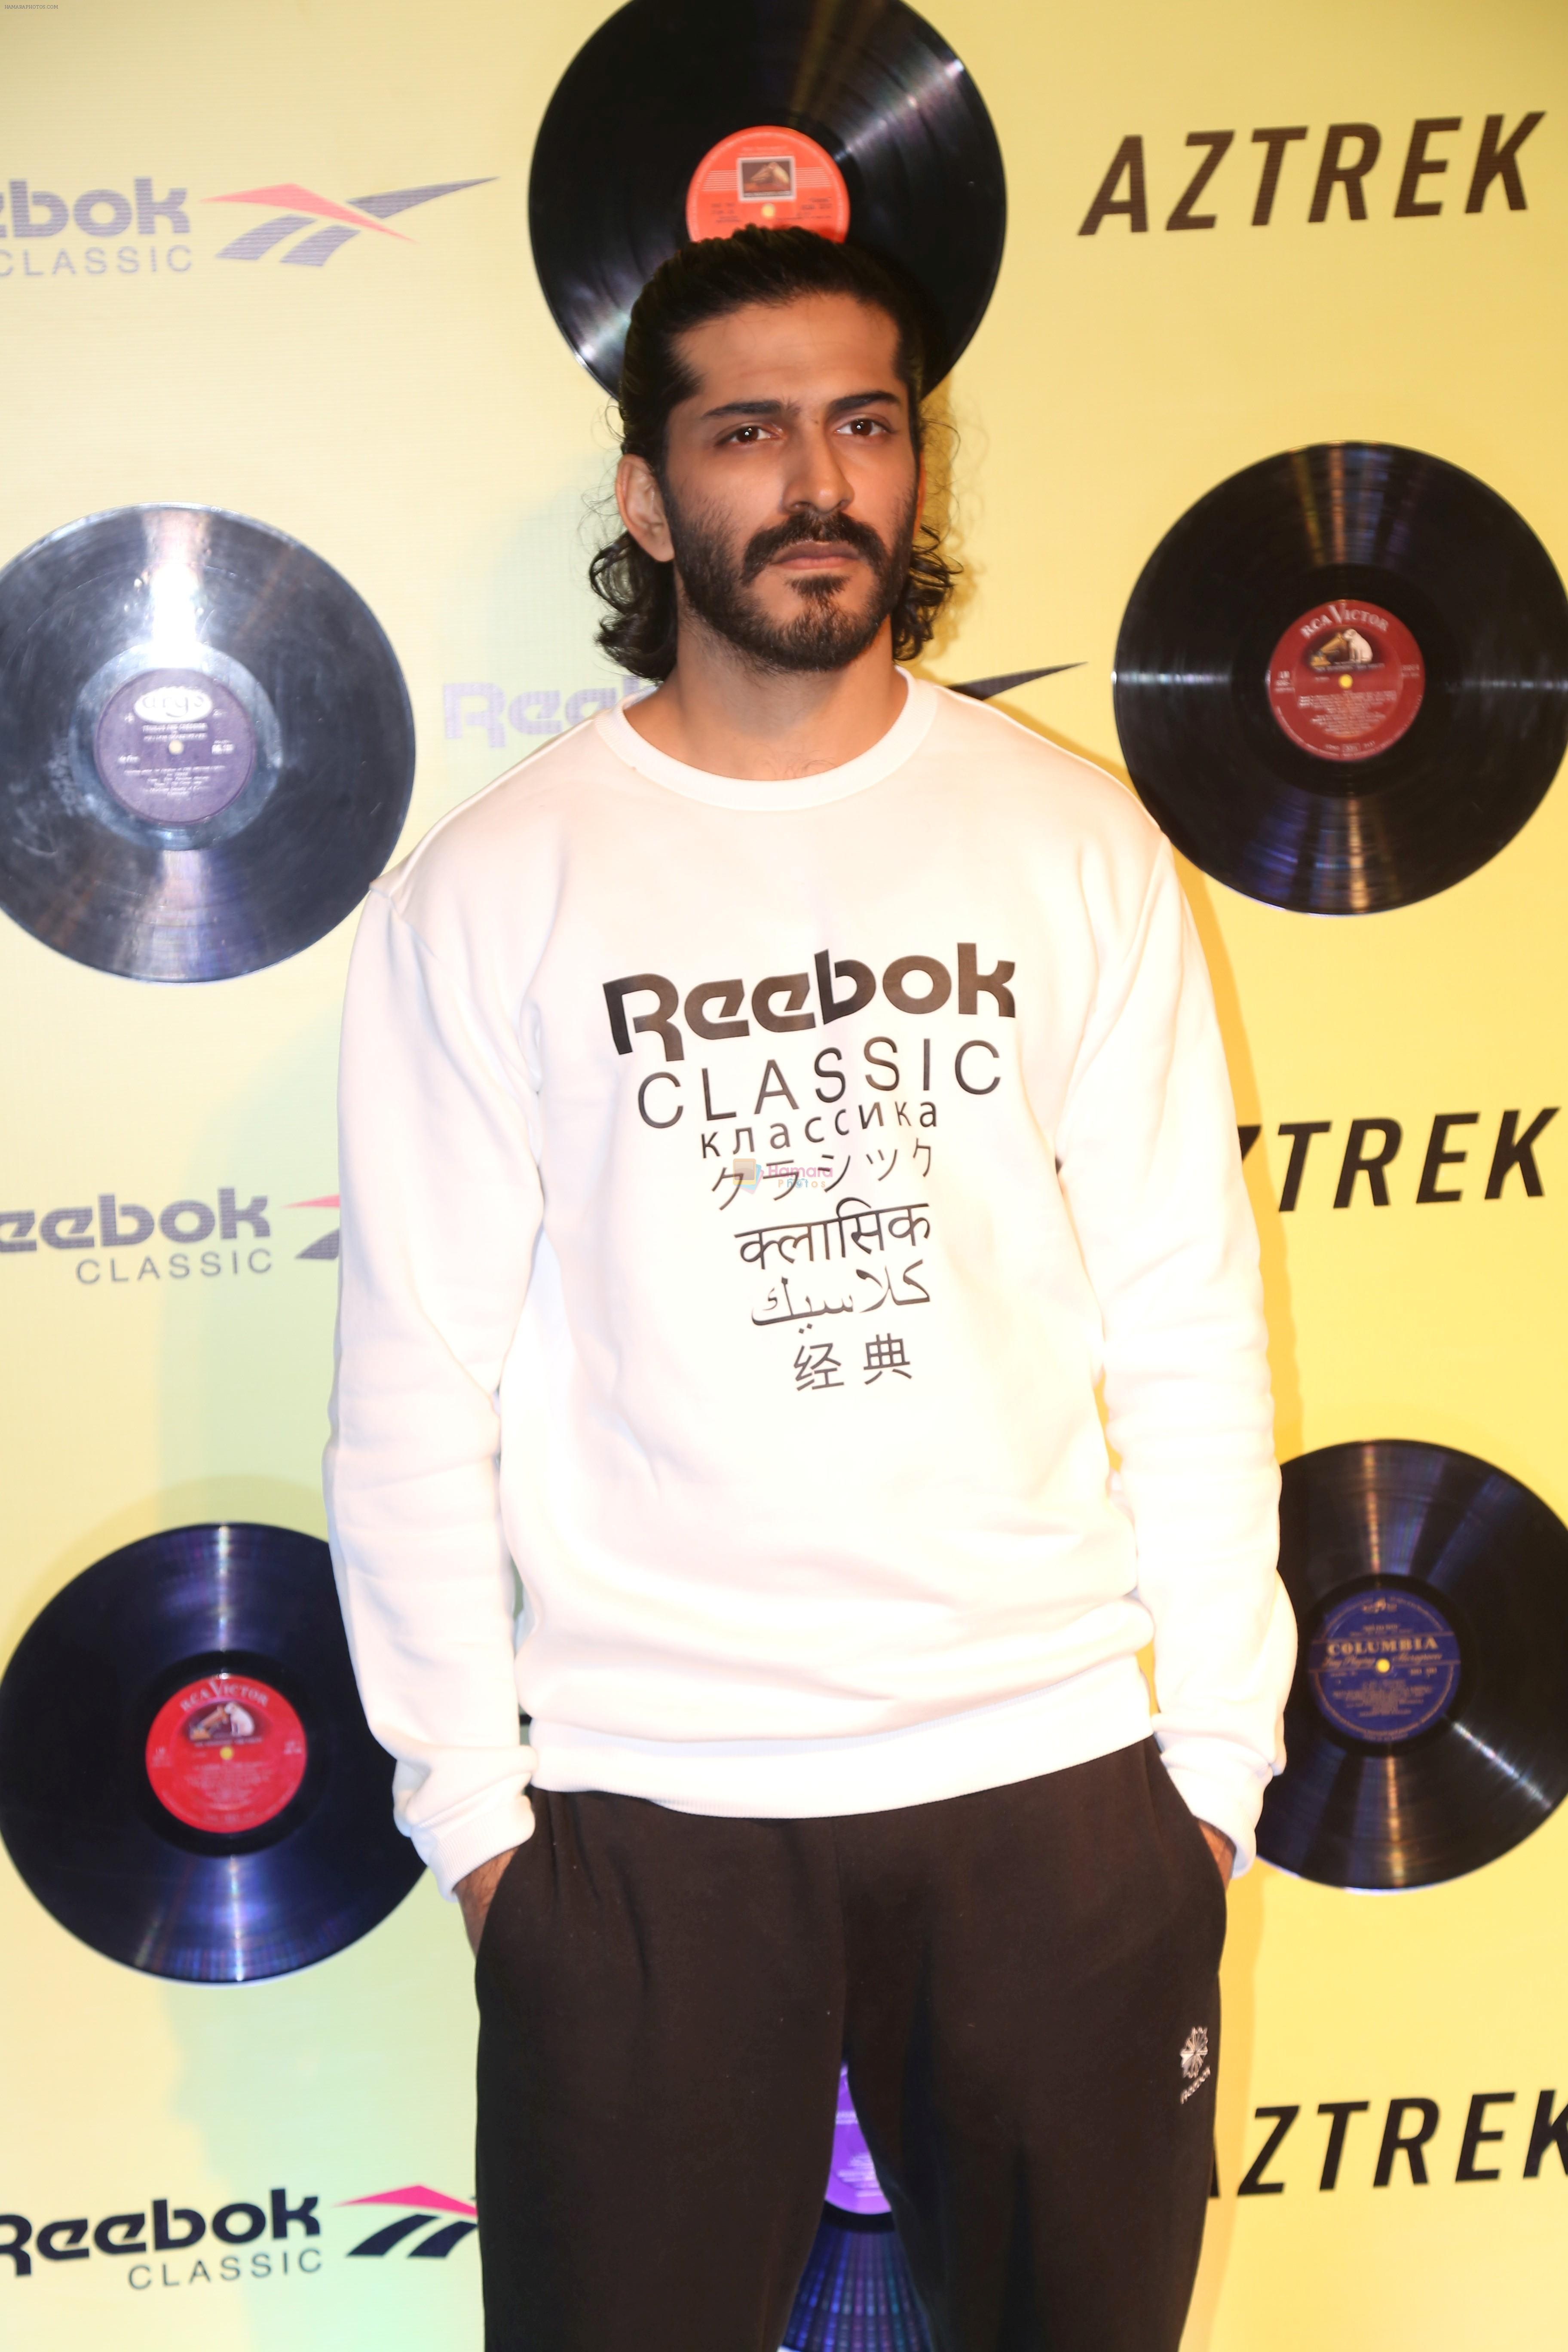 Harshvardhan Kapoor at Reebok Aztrek event at famous studio mahalaxmi on 17th March 2019